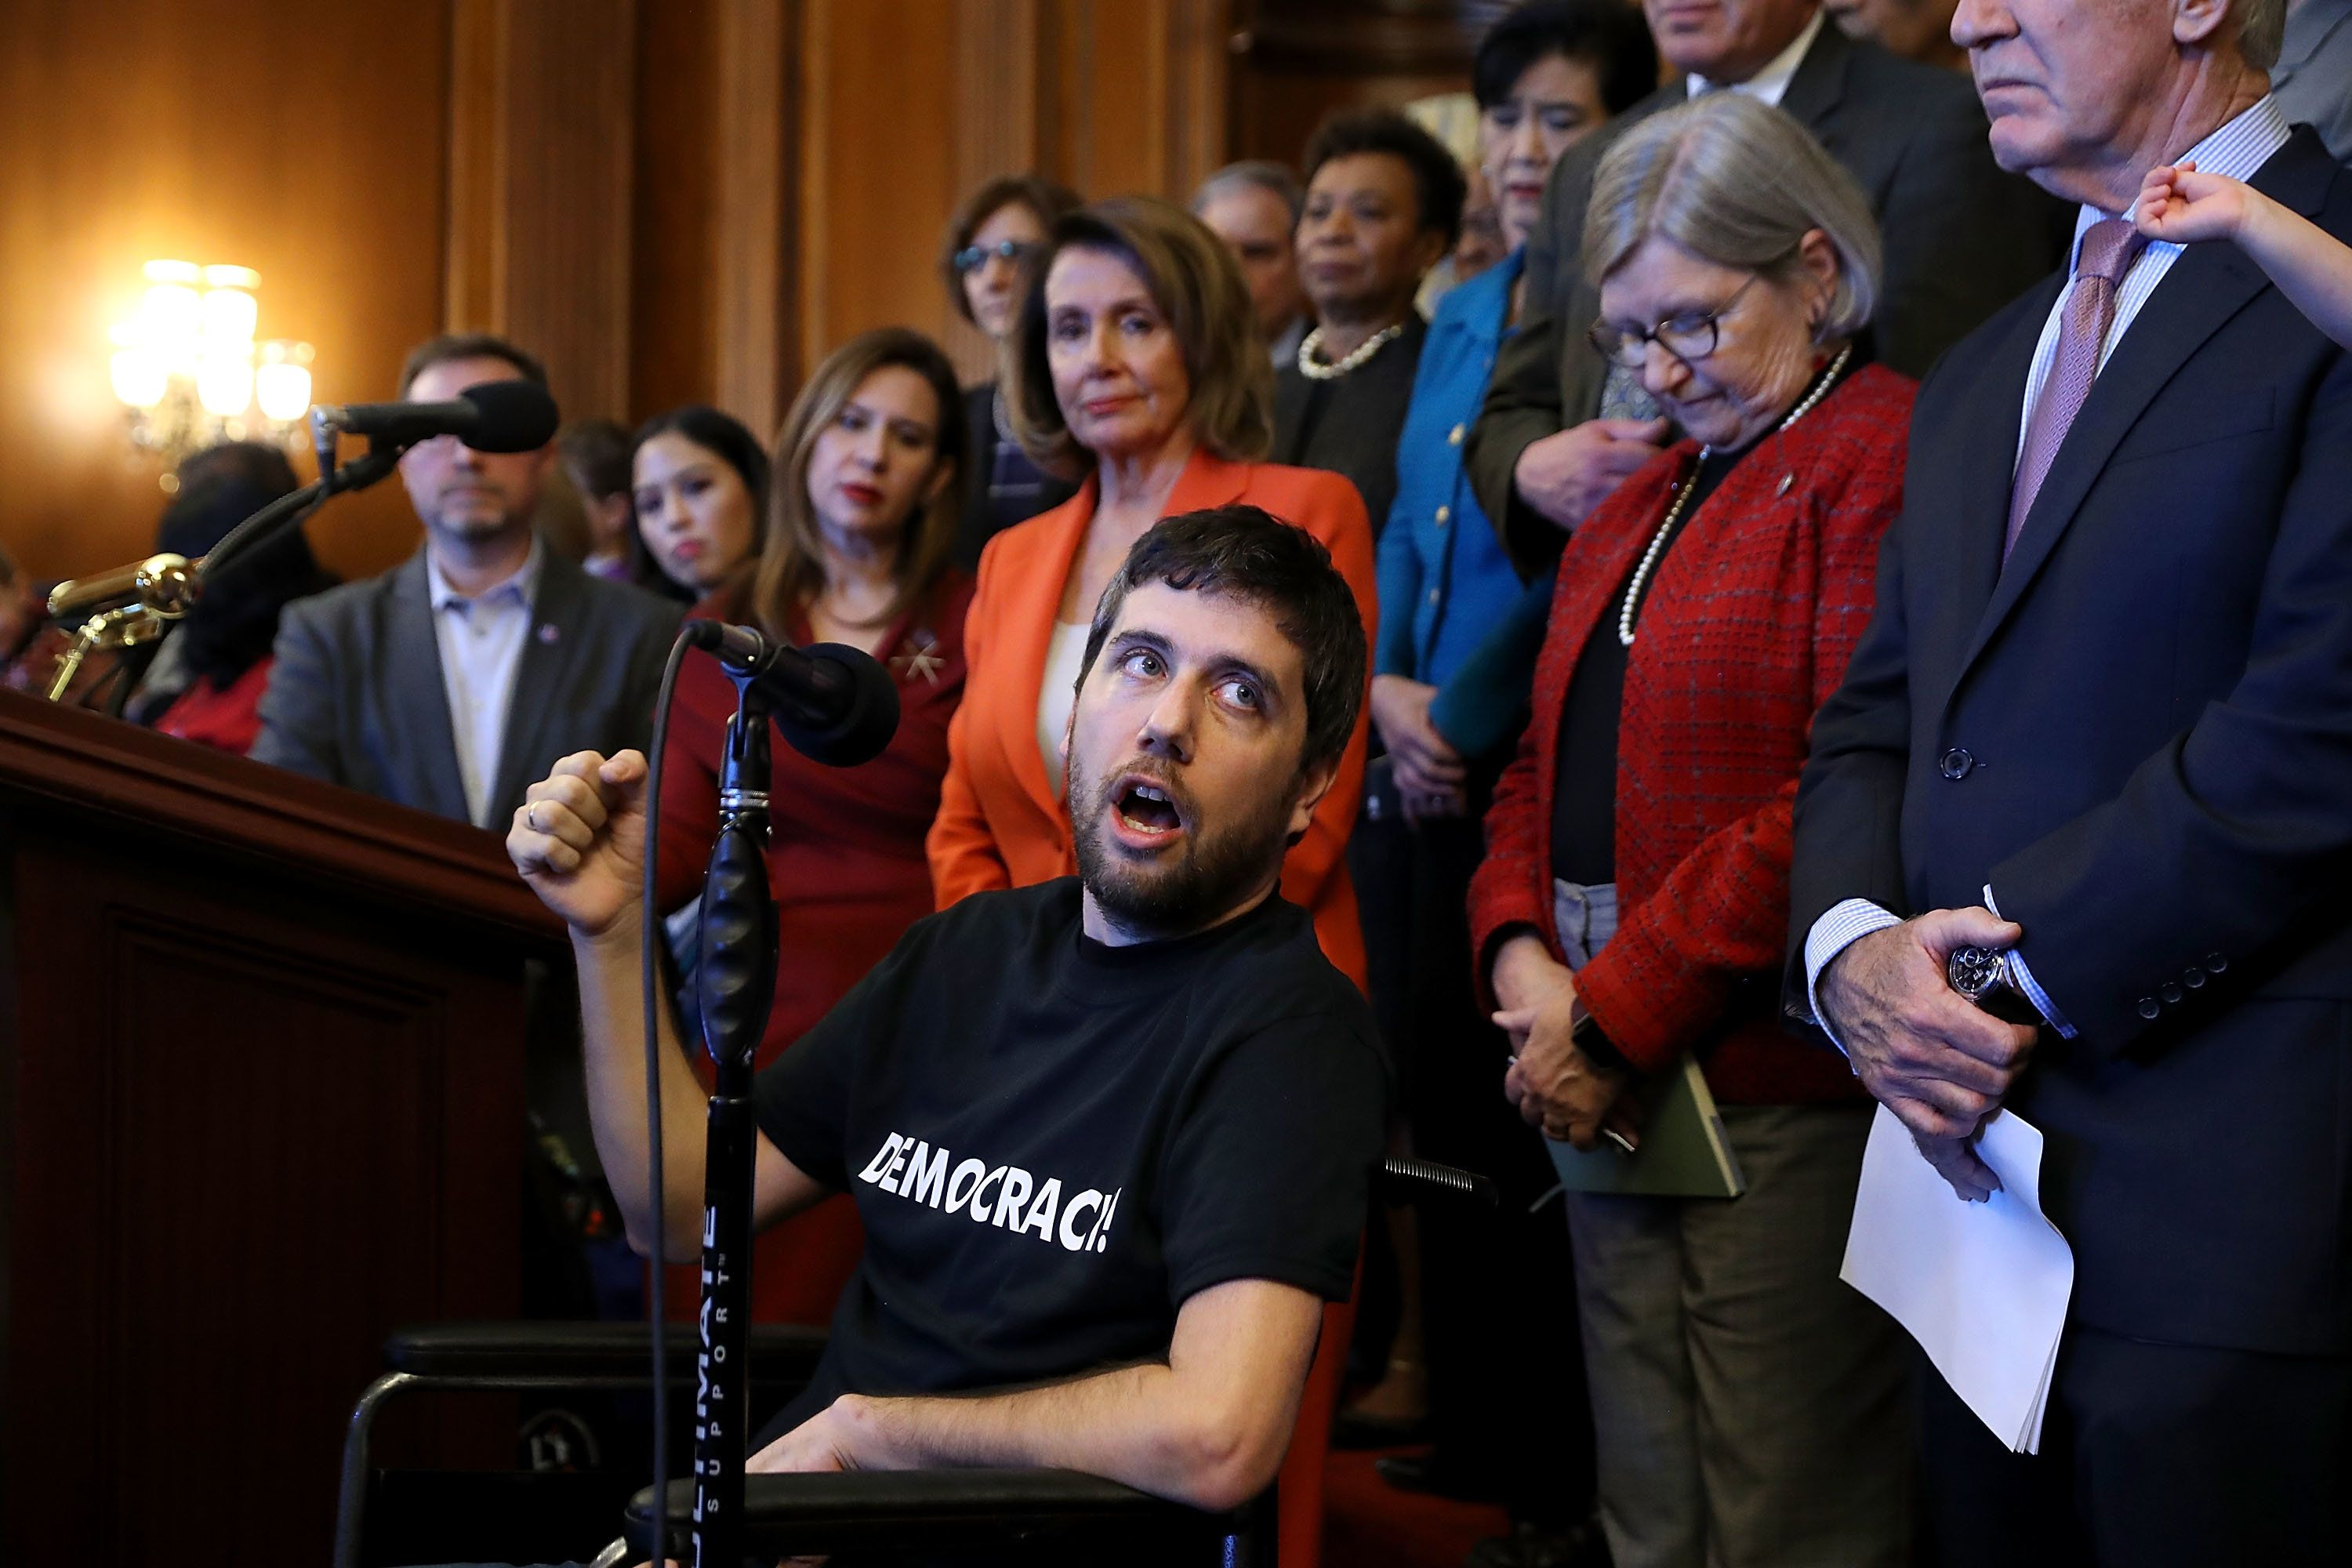 Ady Barkan, a progressive activist with amyotrophic lateral sclerosis, joined House Minority Leader Nancy Pelosi (D-Calif.) a